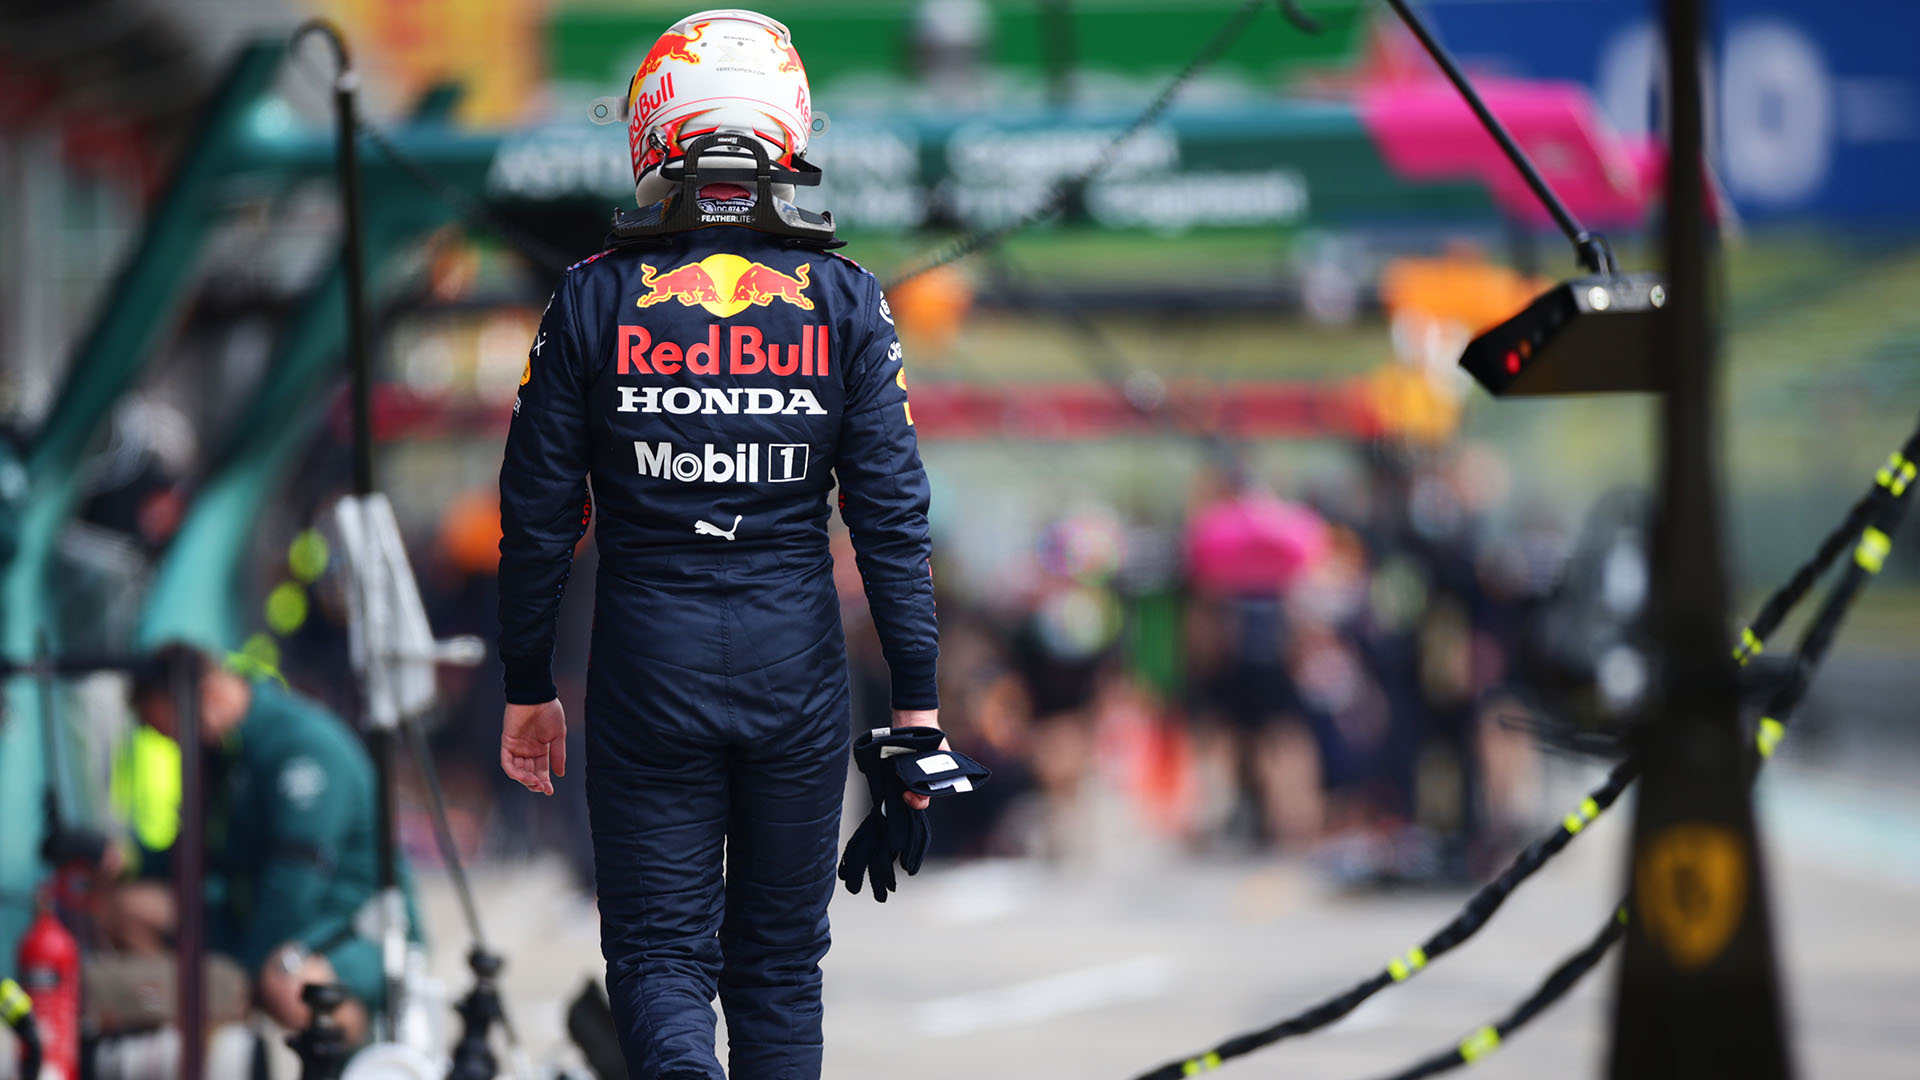 Max Verstappen says Mercedes Imola pace 'no surprise', as he reveals cause of FP2 failure